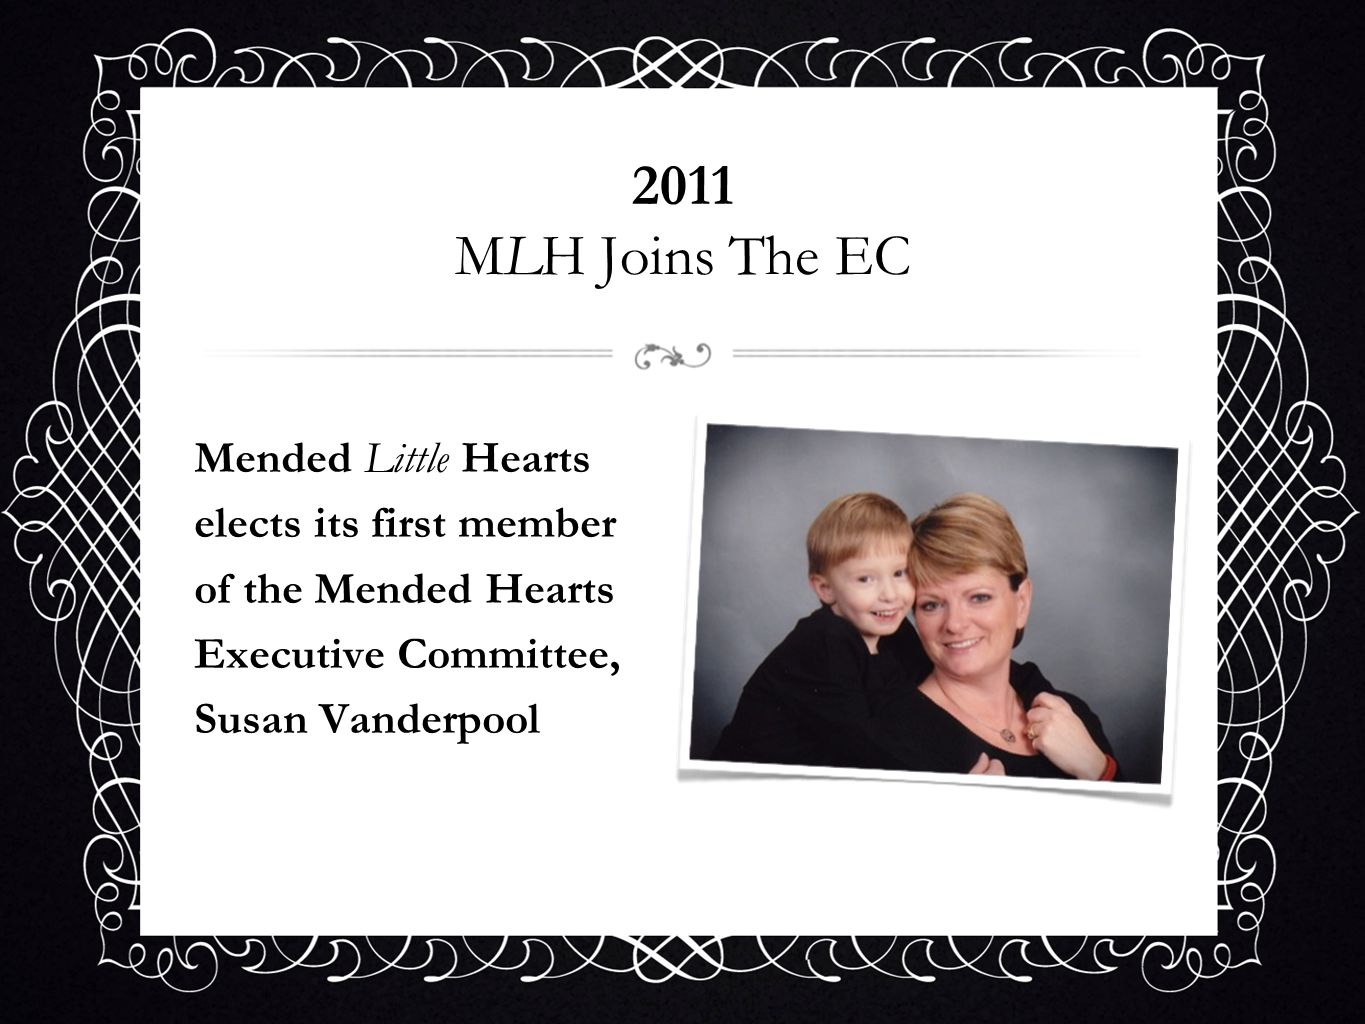 2011 MLH Joins The ECMended Little Hearts elects its first member of the Mended Hearts Executive Committee, Susan Vanderpool.